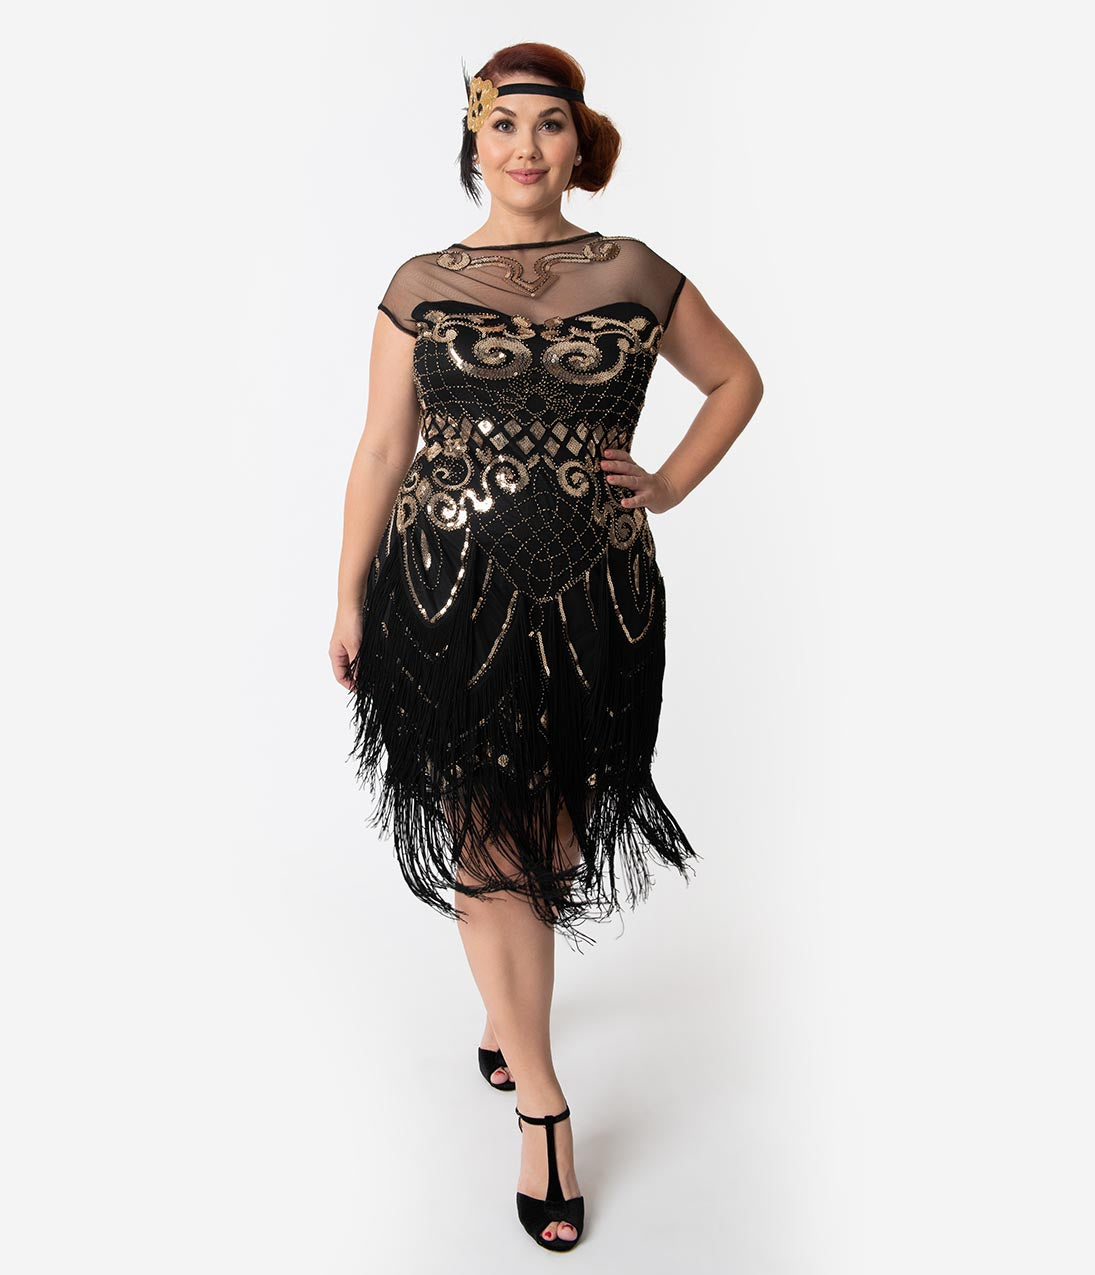 fea3eb22cc35 Unique Vintage Plus Size 1920s Black & Gold Sequin Fringe Zulla Flapper  Dress